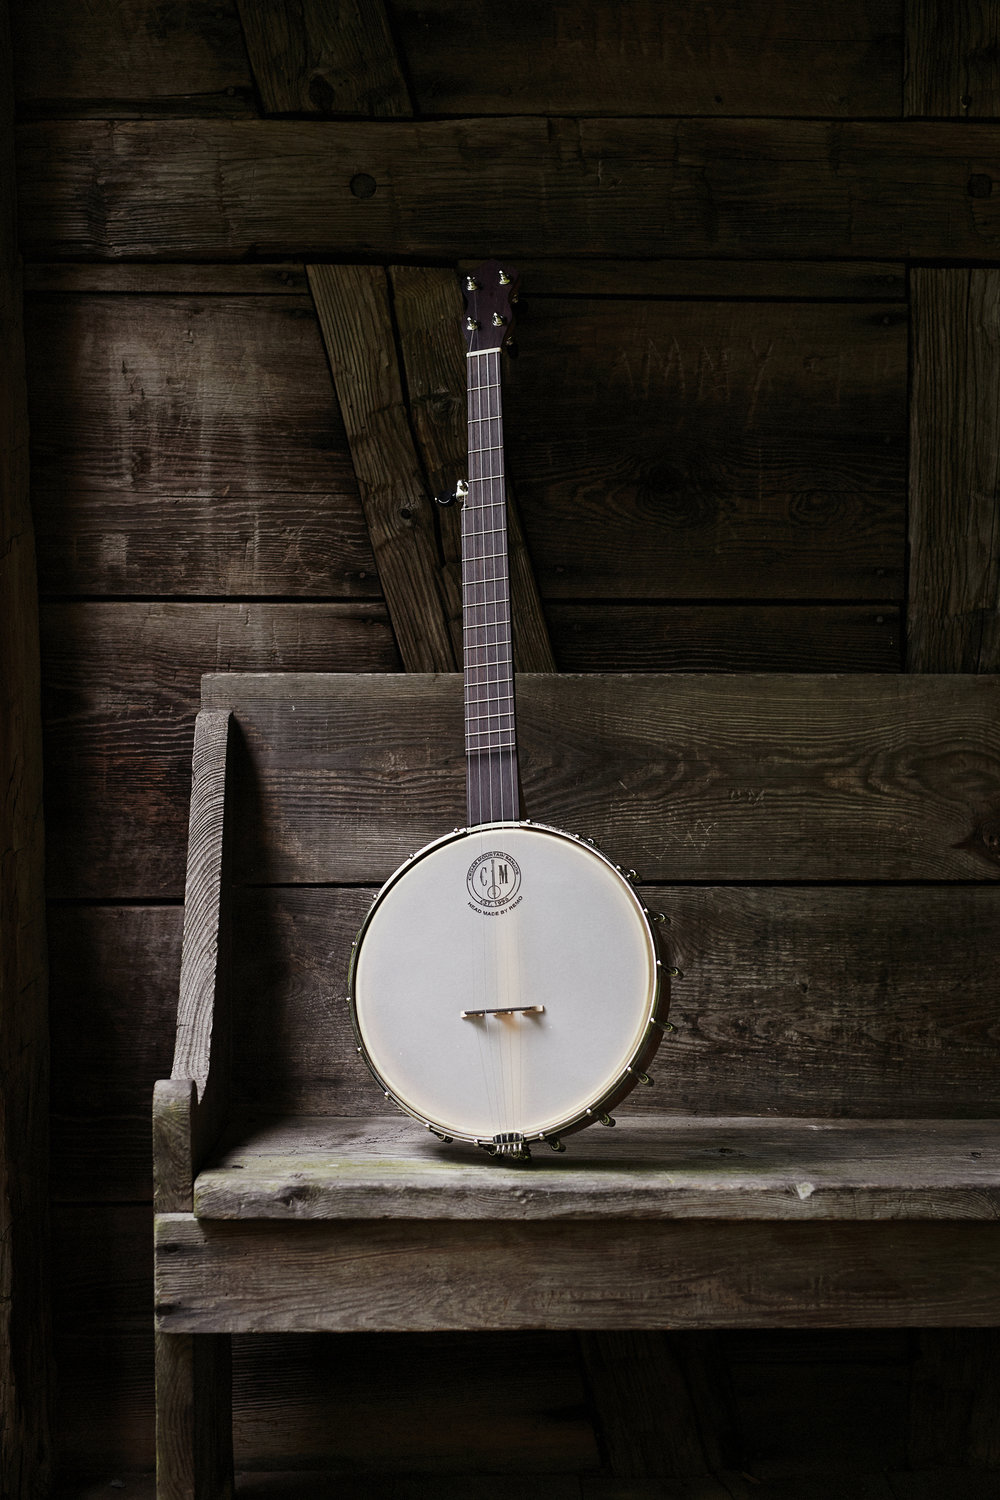 cedarmountainbanjos_rustywilliams_banjoonbench.jpg